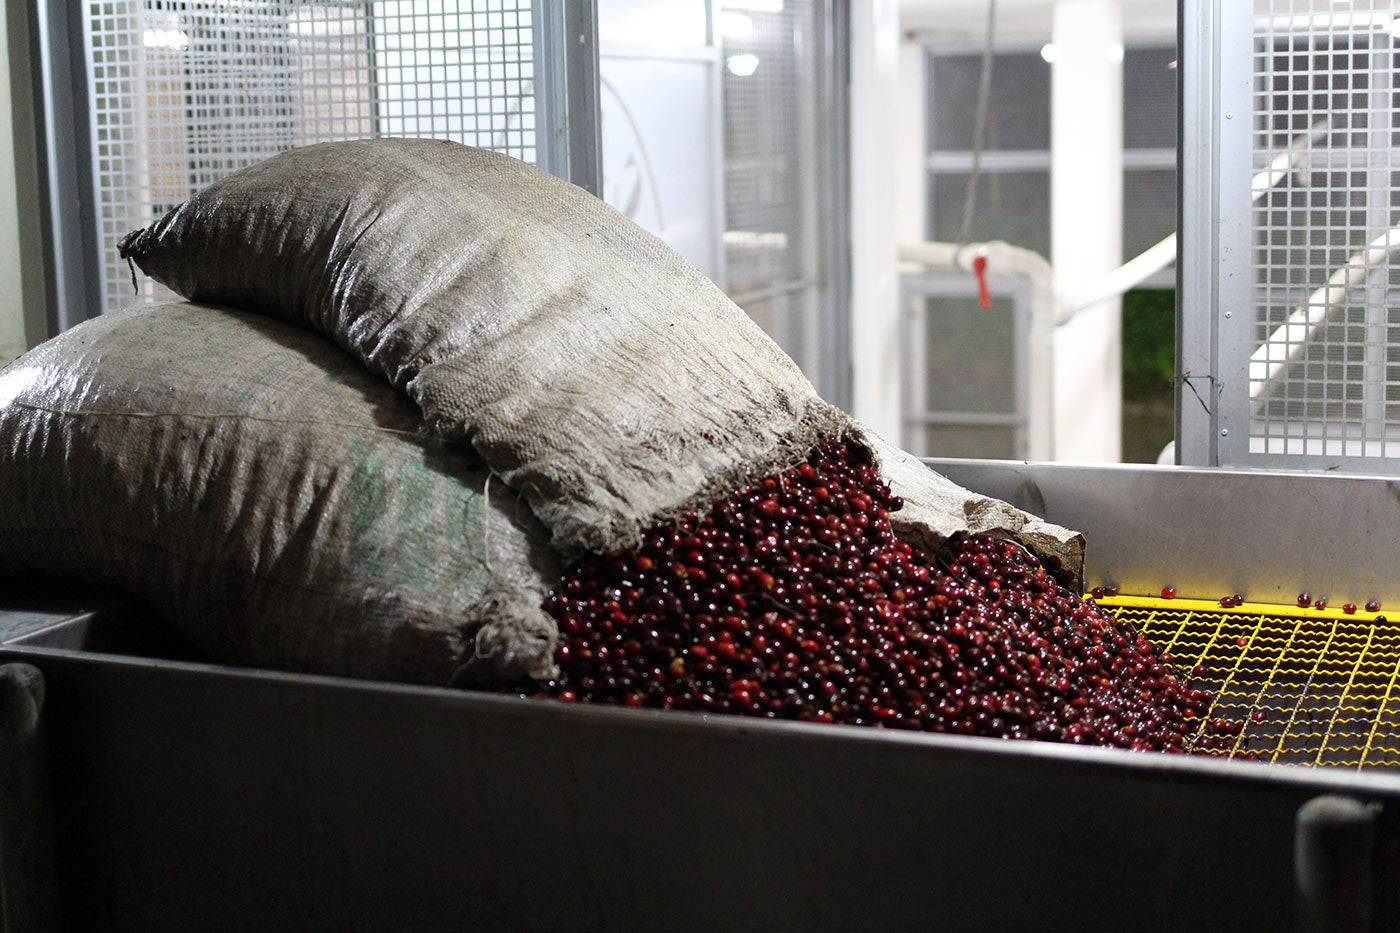 Freshly harvested Gesha being loaded into the depulper